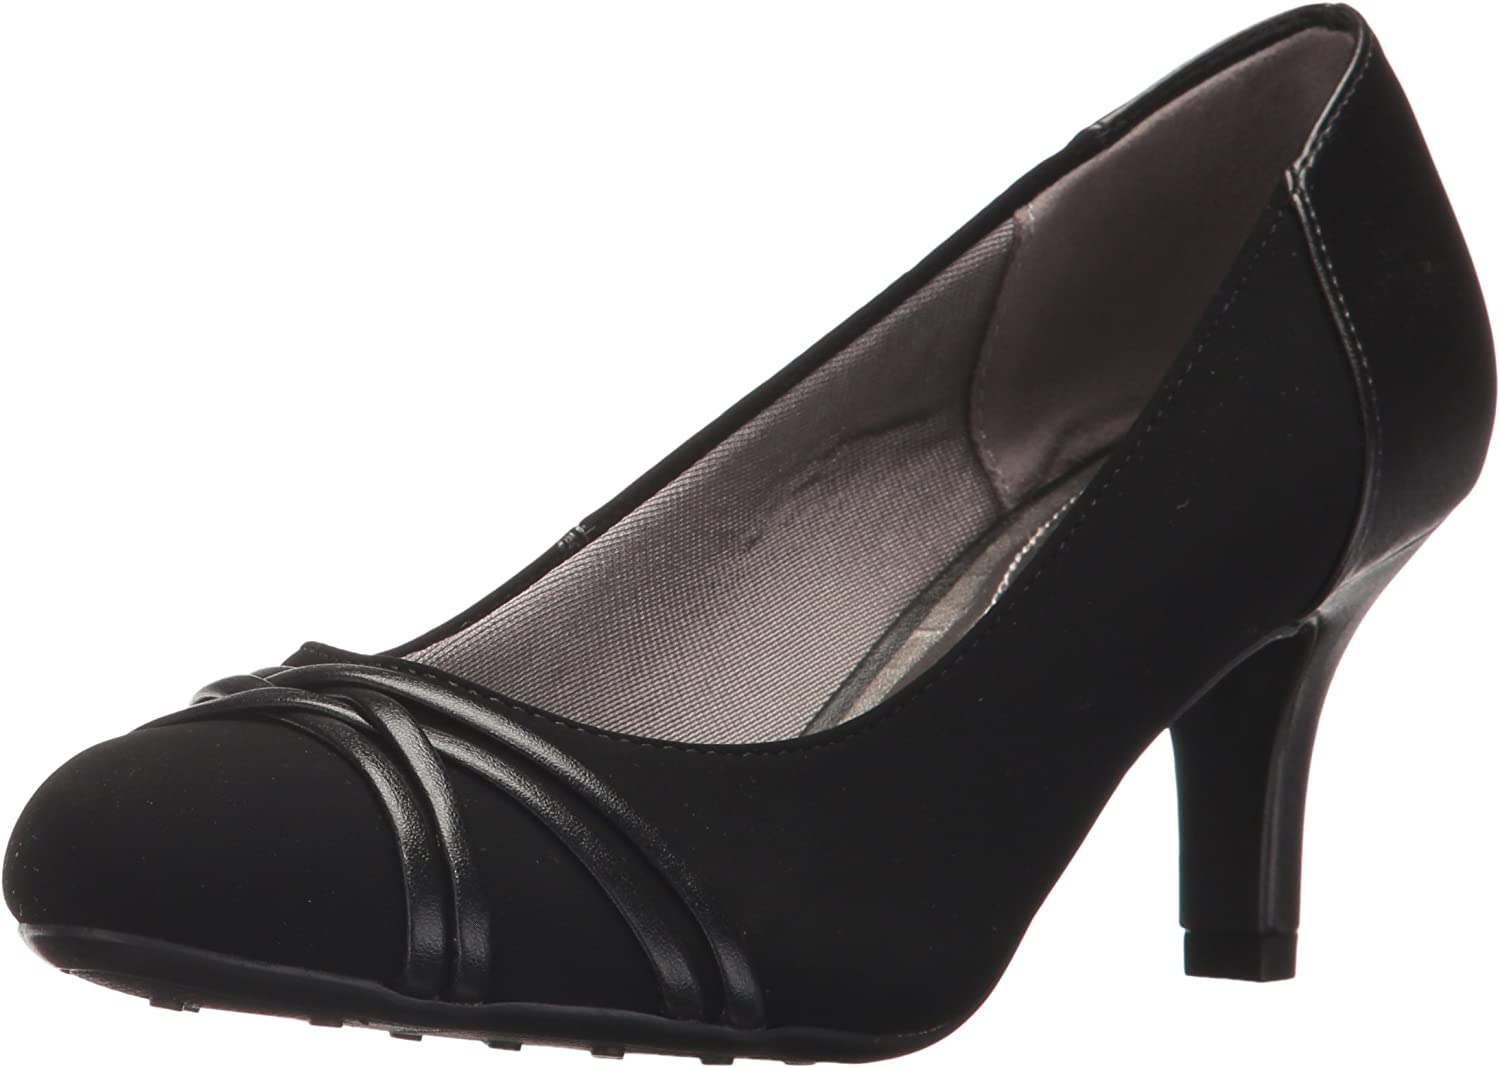 LifeStride Women's Pascal Dress Pump